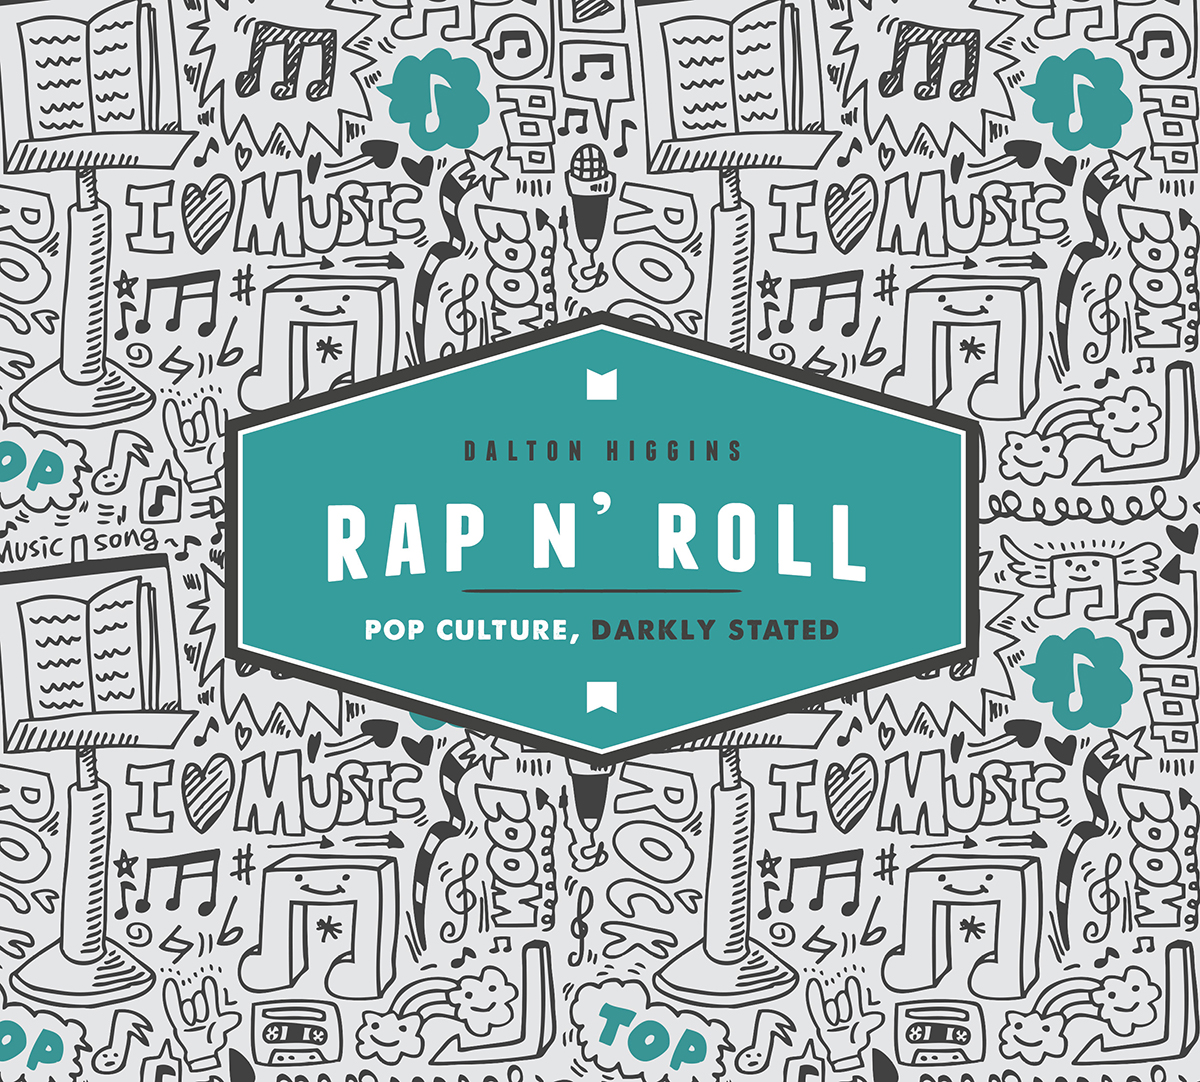 music novella page  novel ideas author dalton higgins launches his sixth book of pop culture essays rap n roll